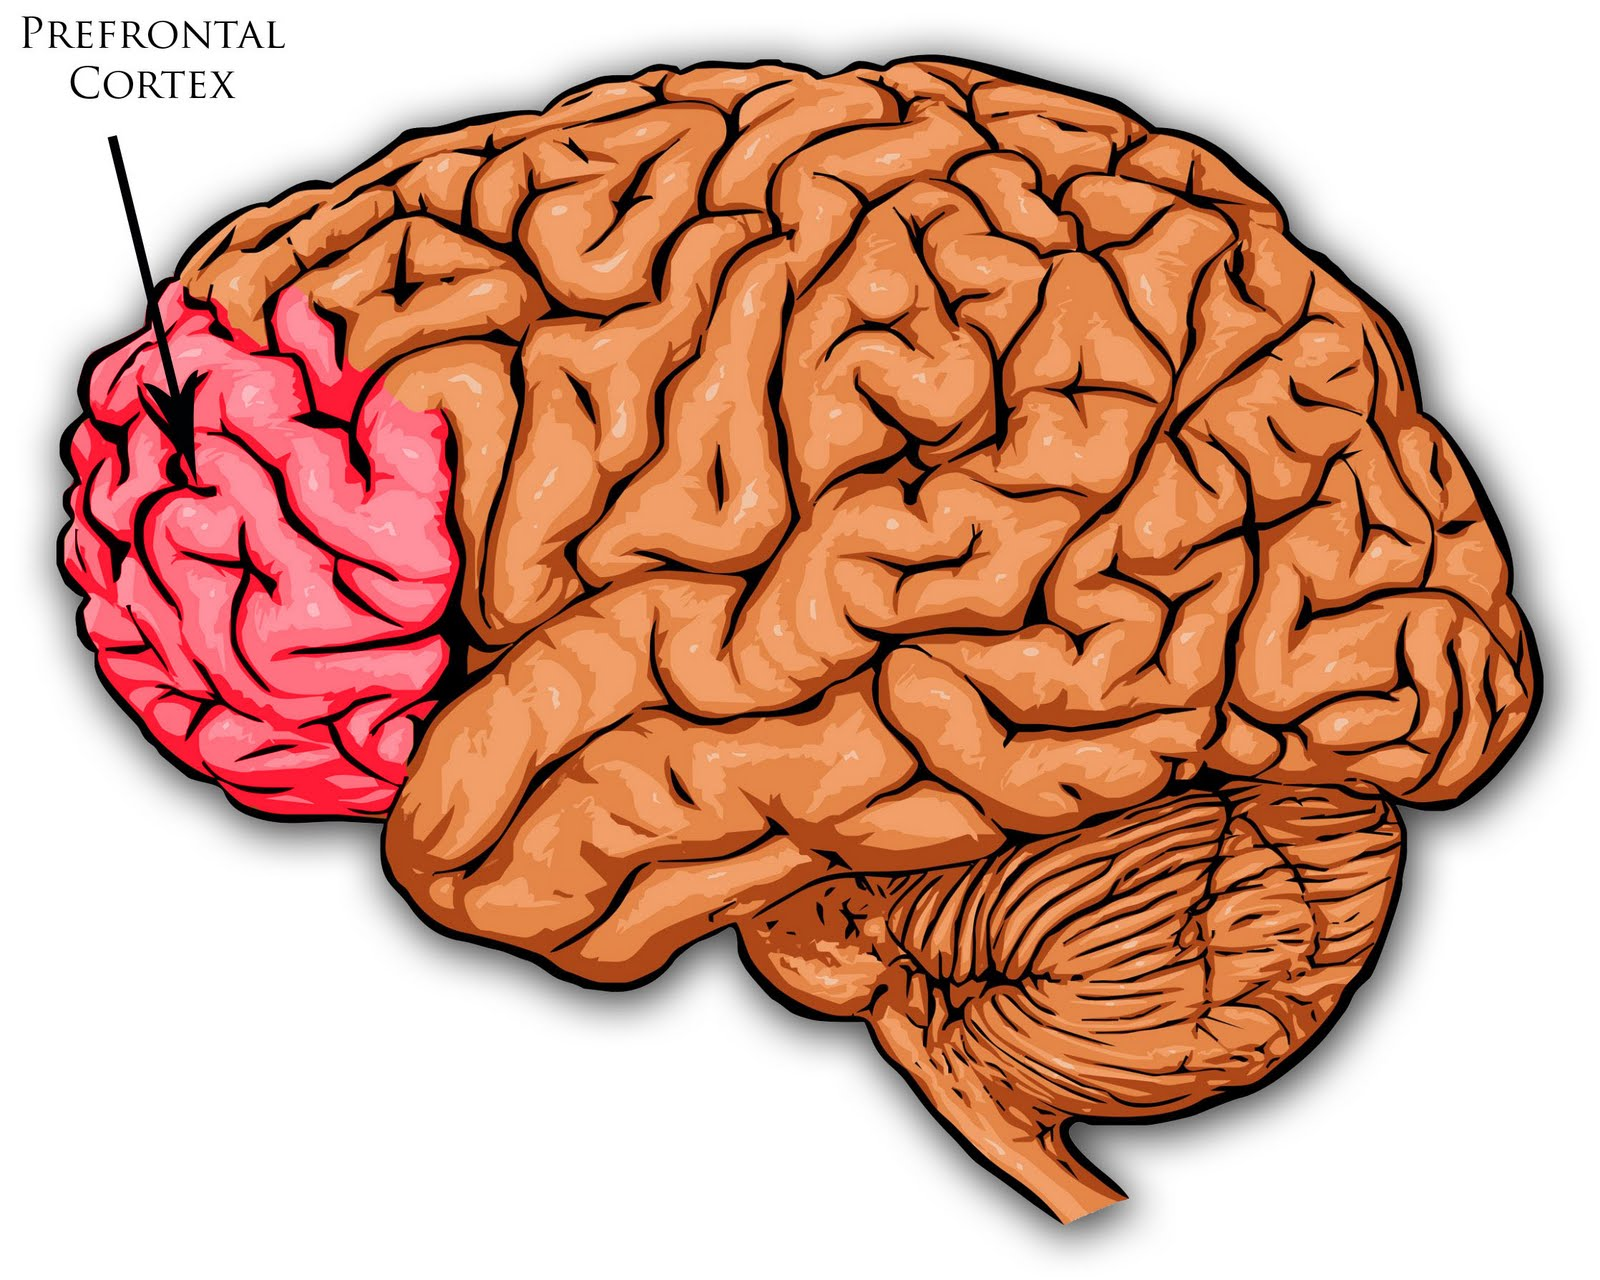 Prefrontal Cortex - ThingLink